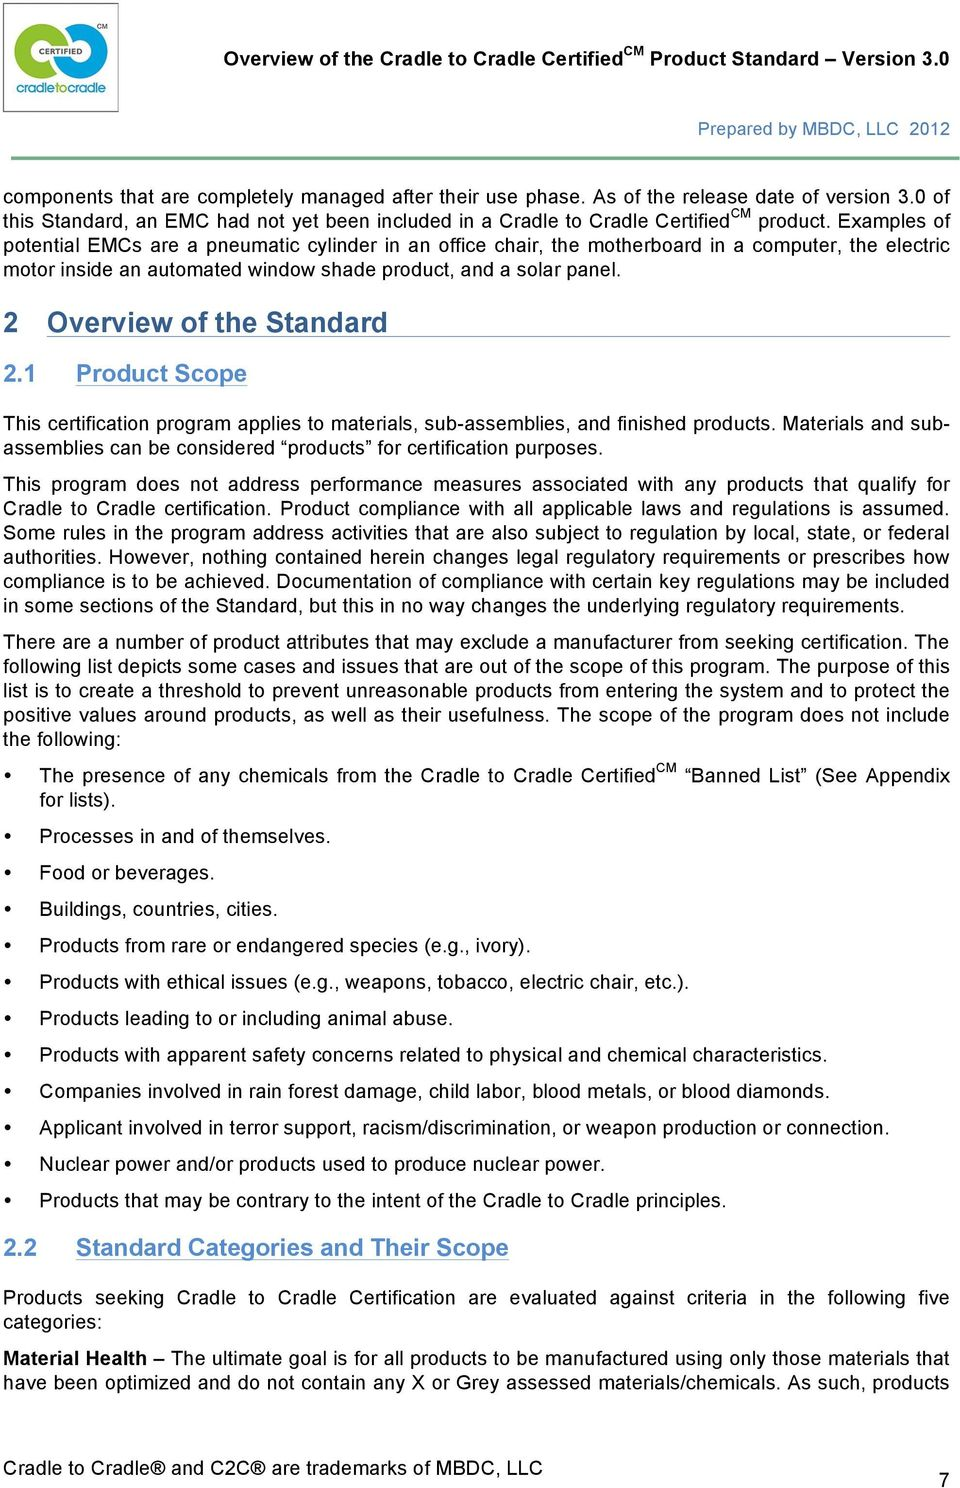 2 Overview of the Standard 2.1 Product Scope This certification program applies to materials, sub-assemblies, and finished products.